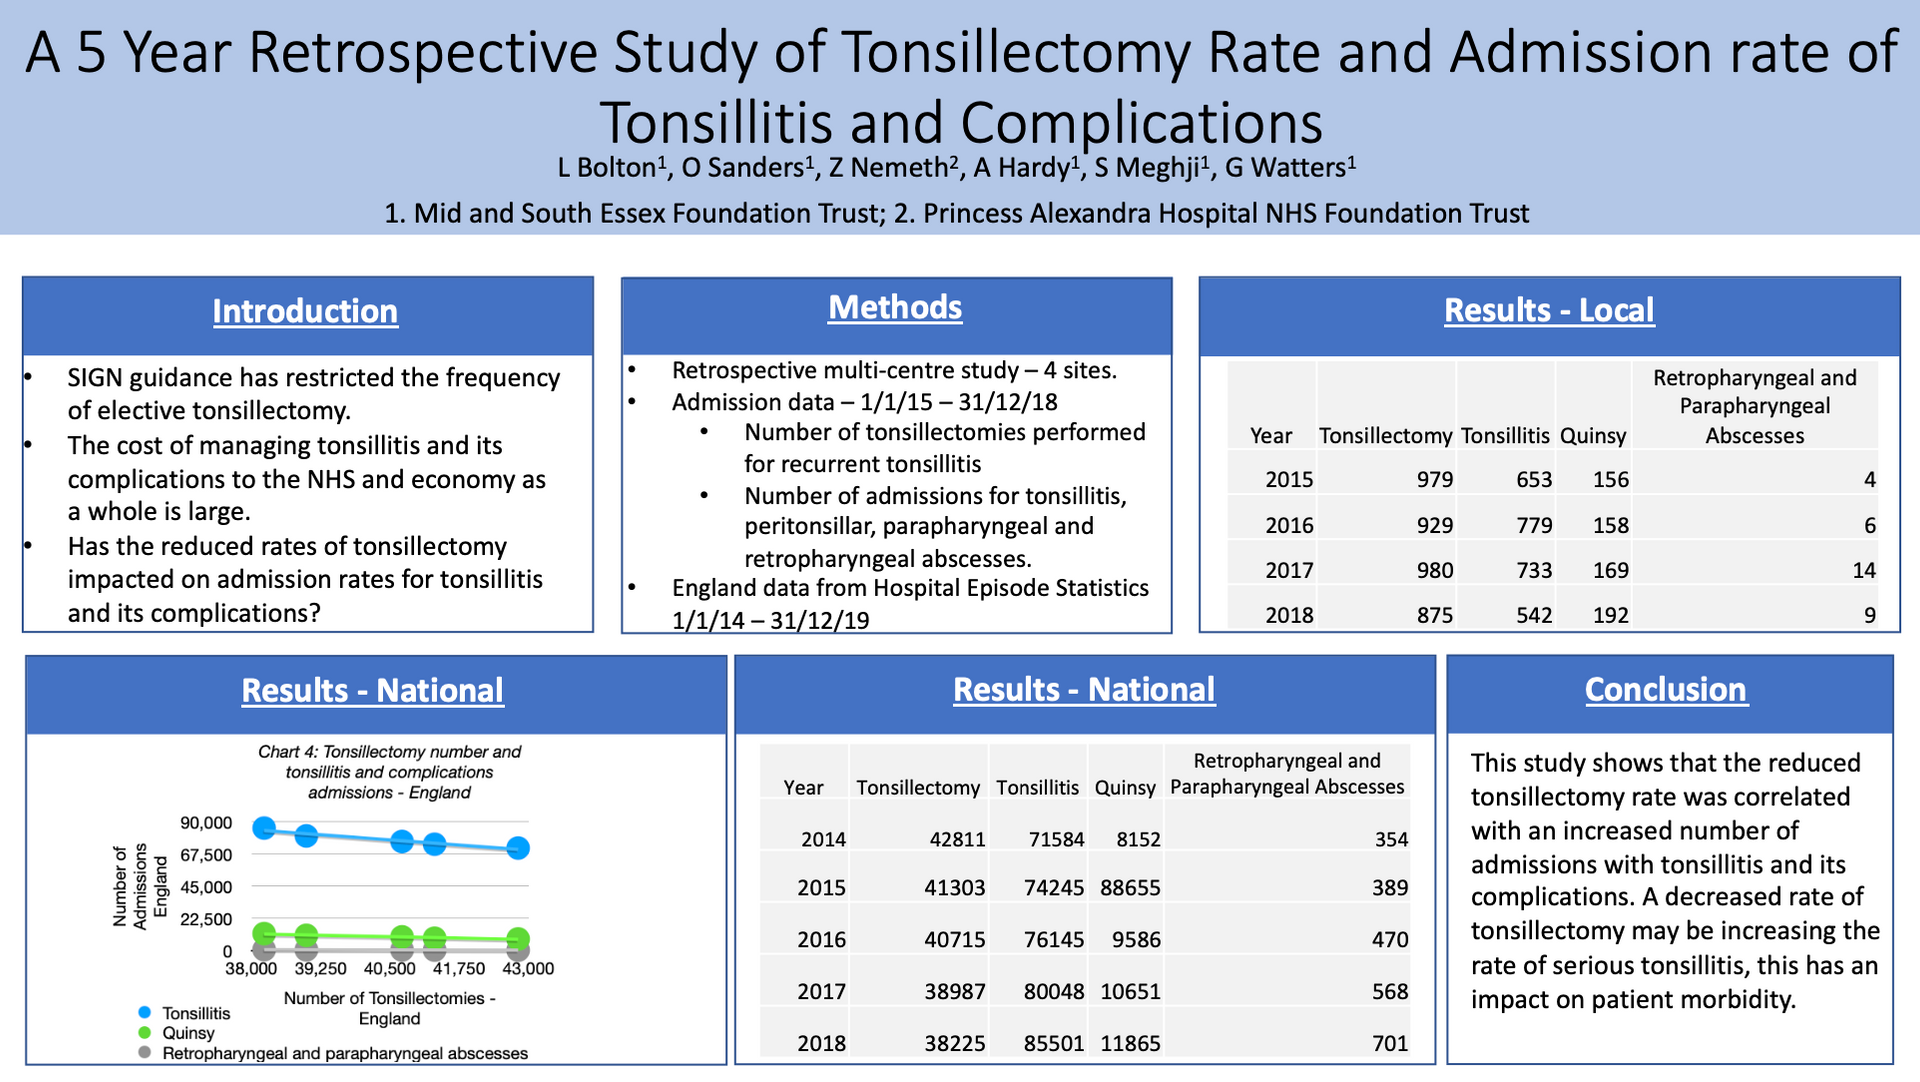 A 5 Year Retrospective Study of Tonsillectomy Rate and Admission rate of Tonsillitis and Complications in the East of England and Nationally: Lauren Bolton